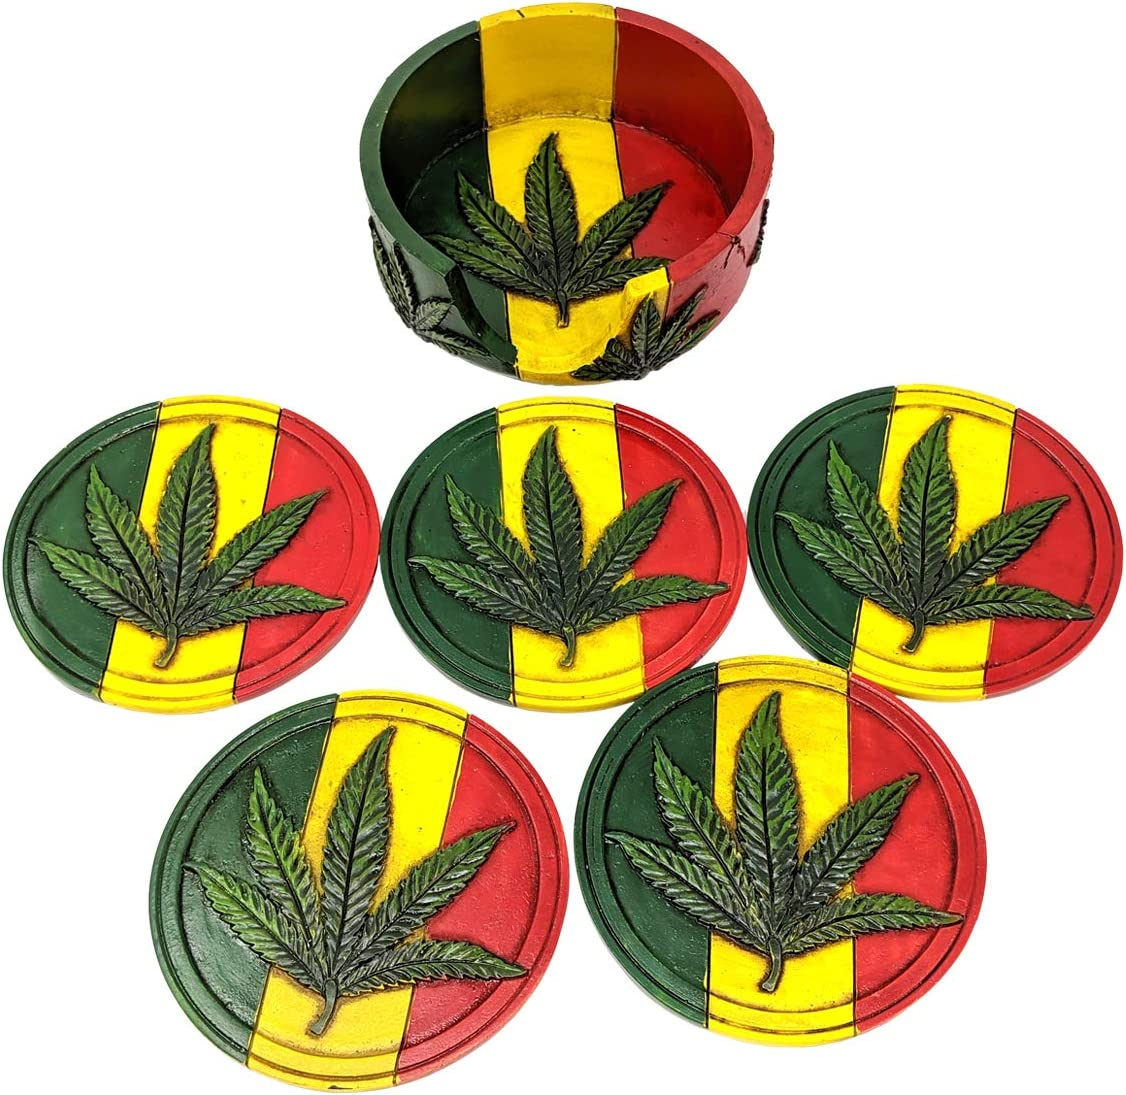 Rasta Coasters Set for Drinks - Jamaican Modern Coaster Set Cool Housewarming Gifts Wine Decorations for Home - Coasters with Holder Wine Bar Accessories and Decor - Rastafarian Art Coasters